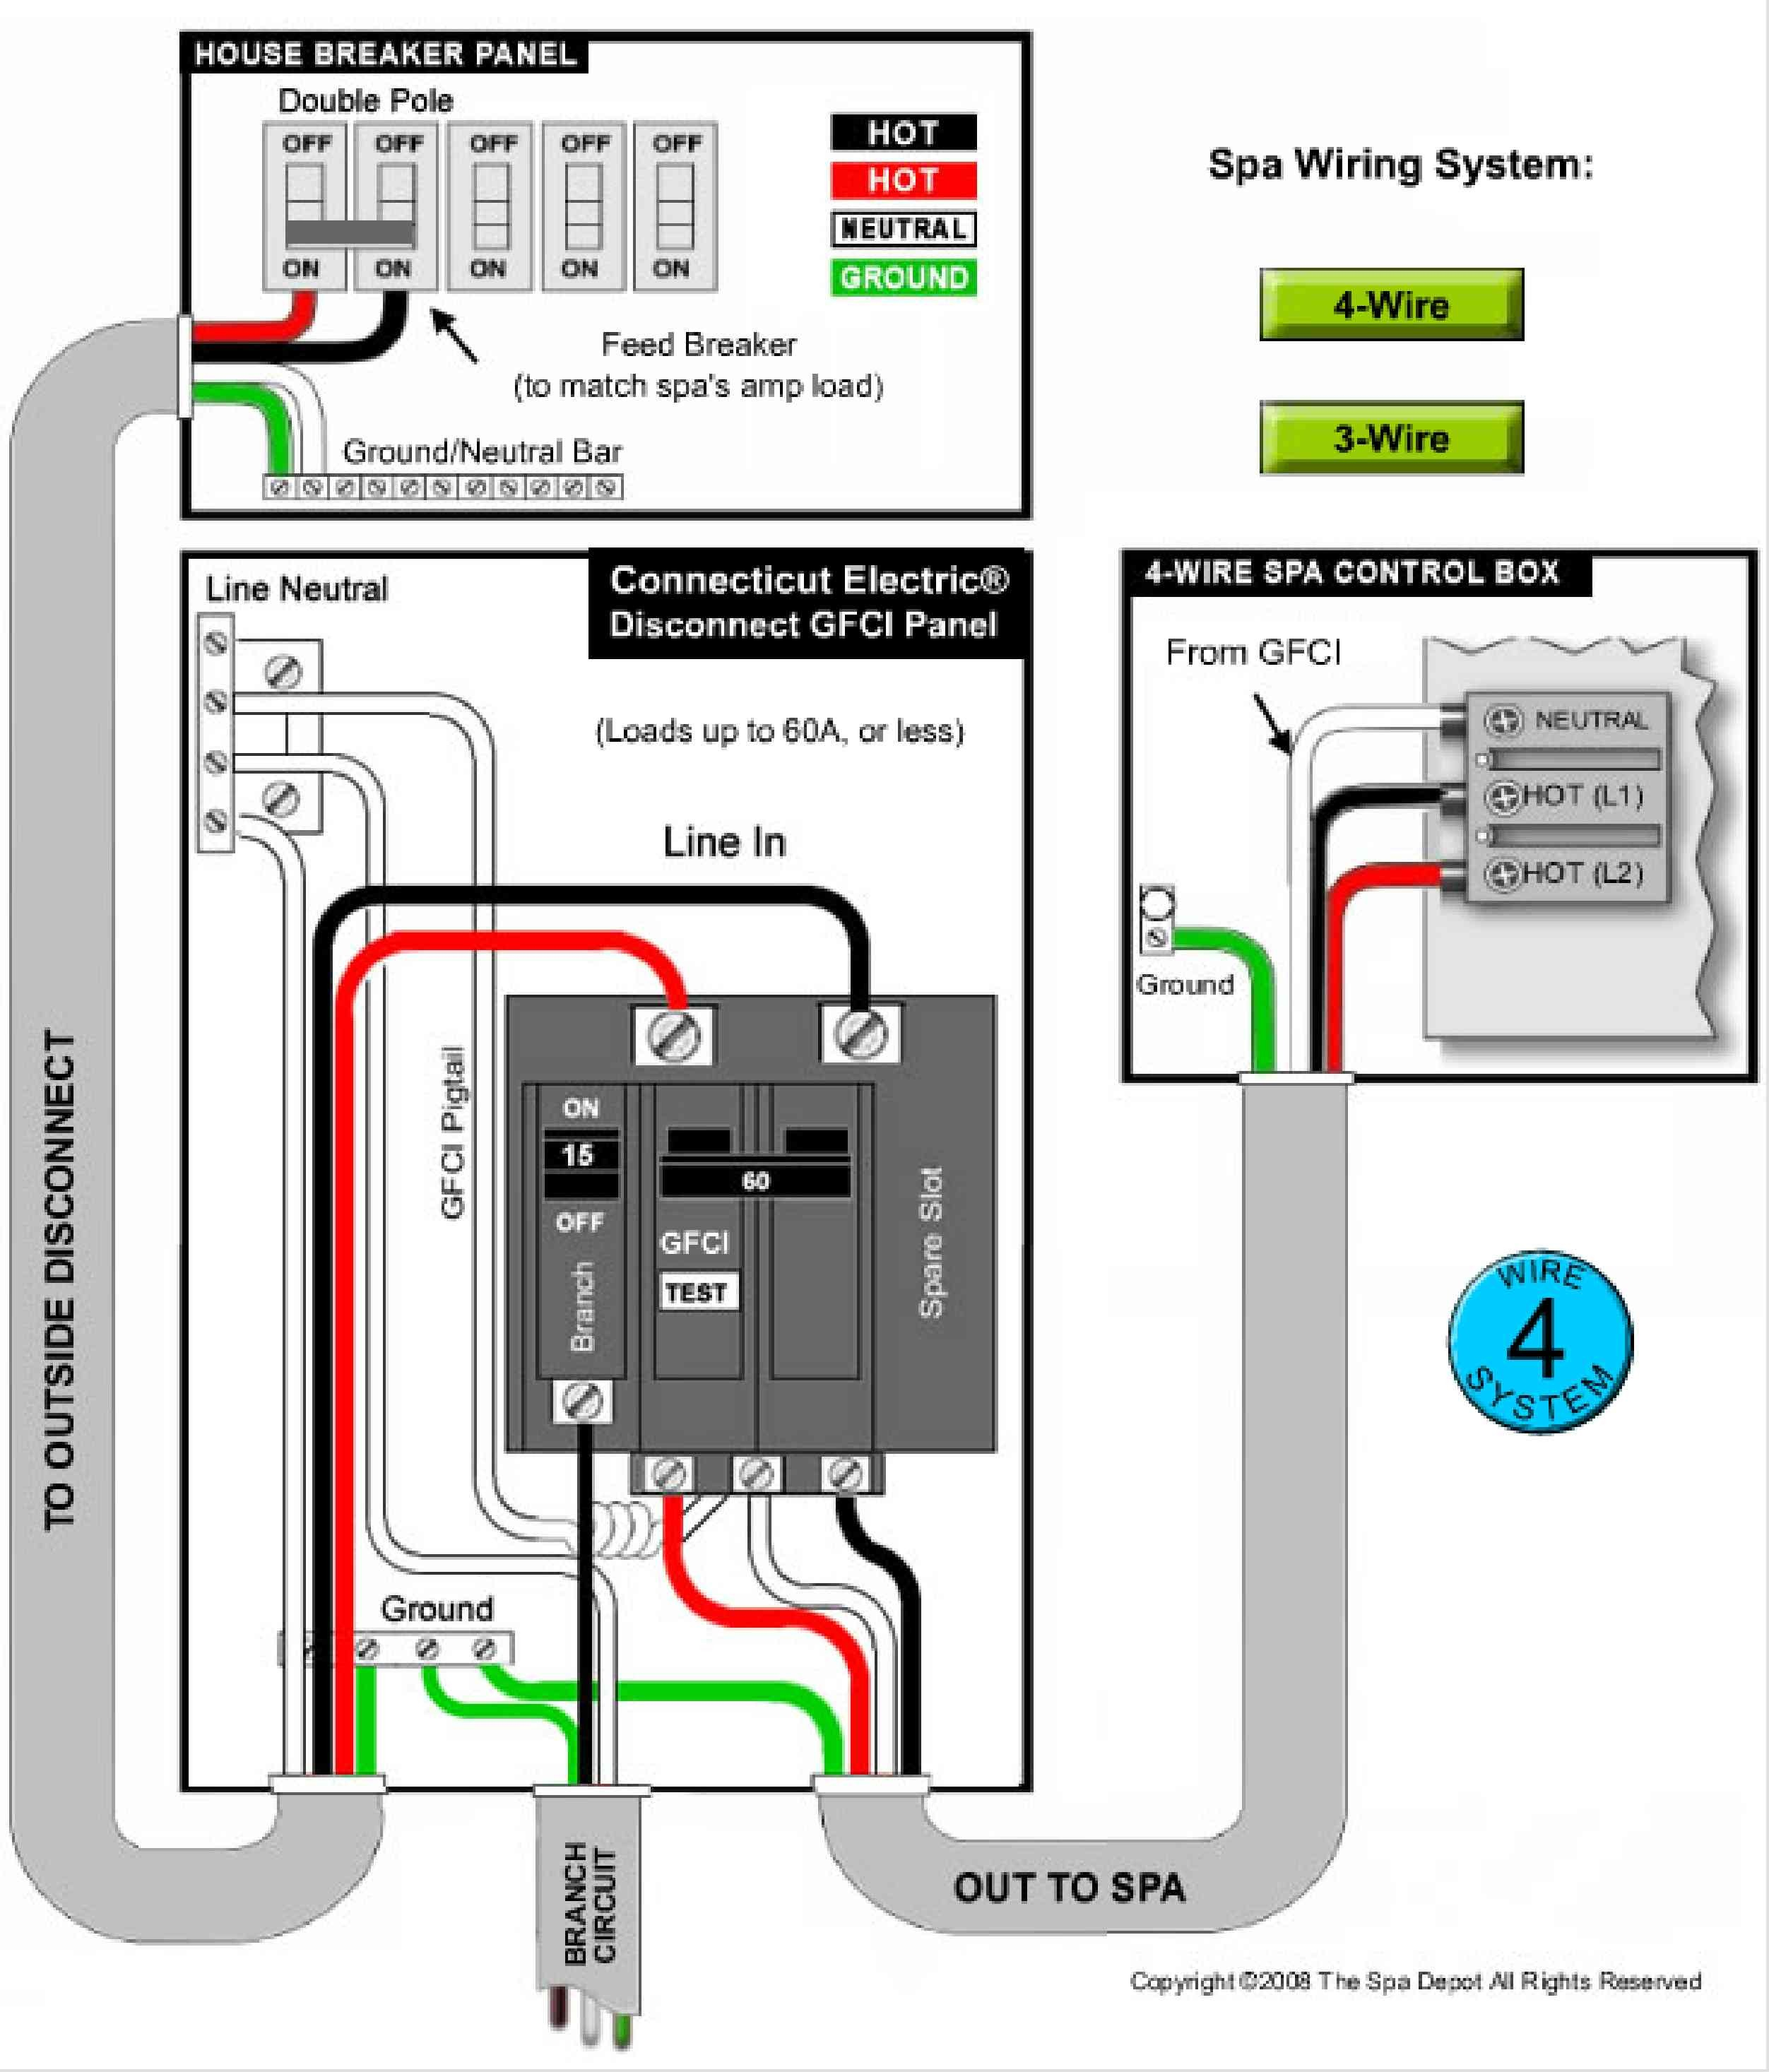 square d hot tub gfci breaker wiring diagram Download-Wiring Diagram for Hot Tub Copy Wiring Diagram Hot to Light Best Hot Tub Electrical Wiring 12-a